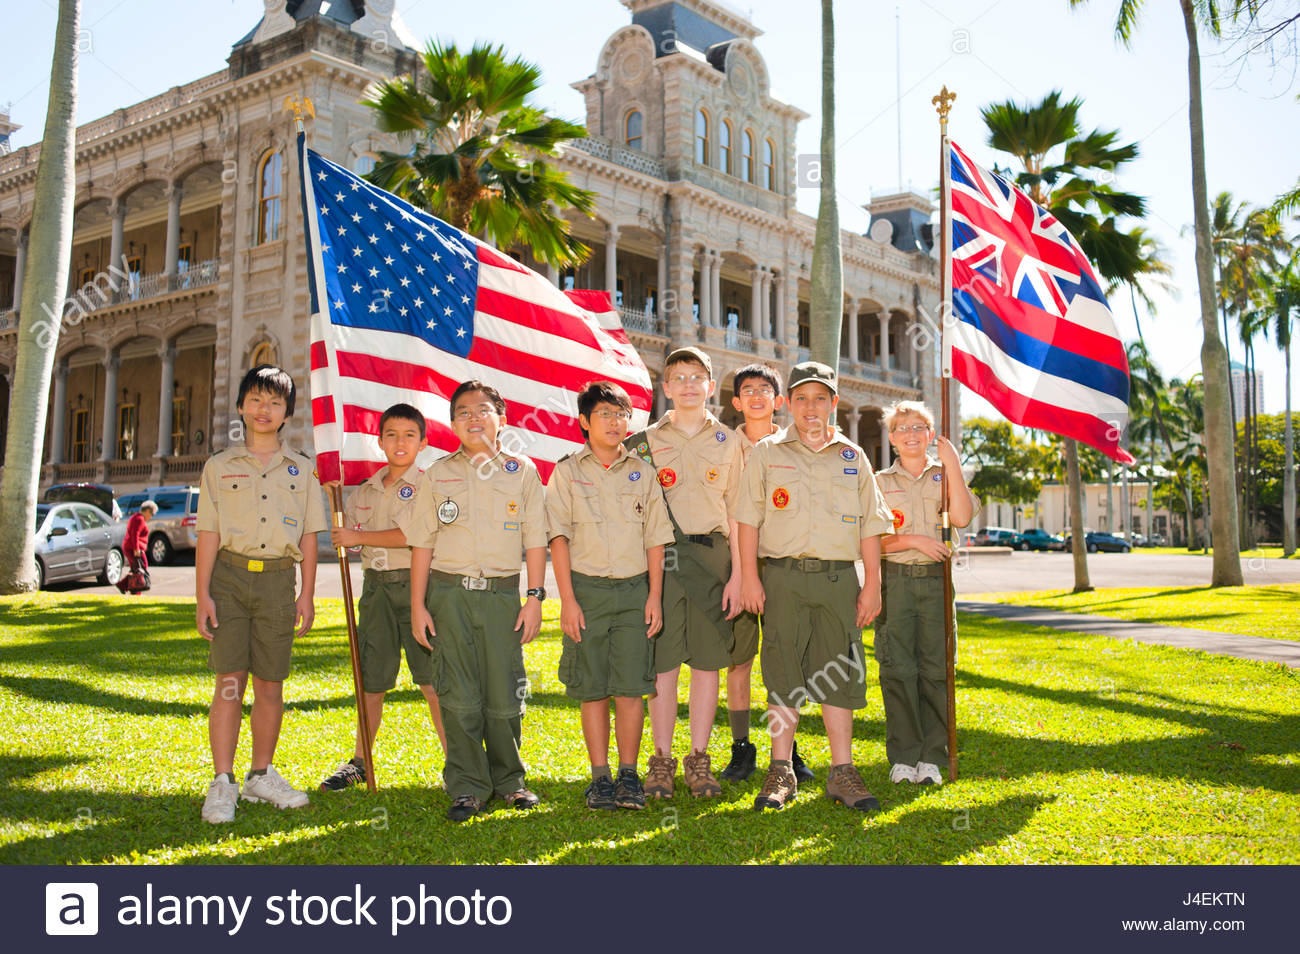 Group of Boy Scouts in front of Iolani Palace celebrating the 100 year anniversary for the Boy Scouts of America, - Stock Image